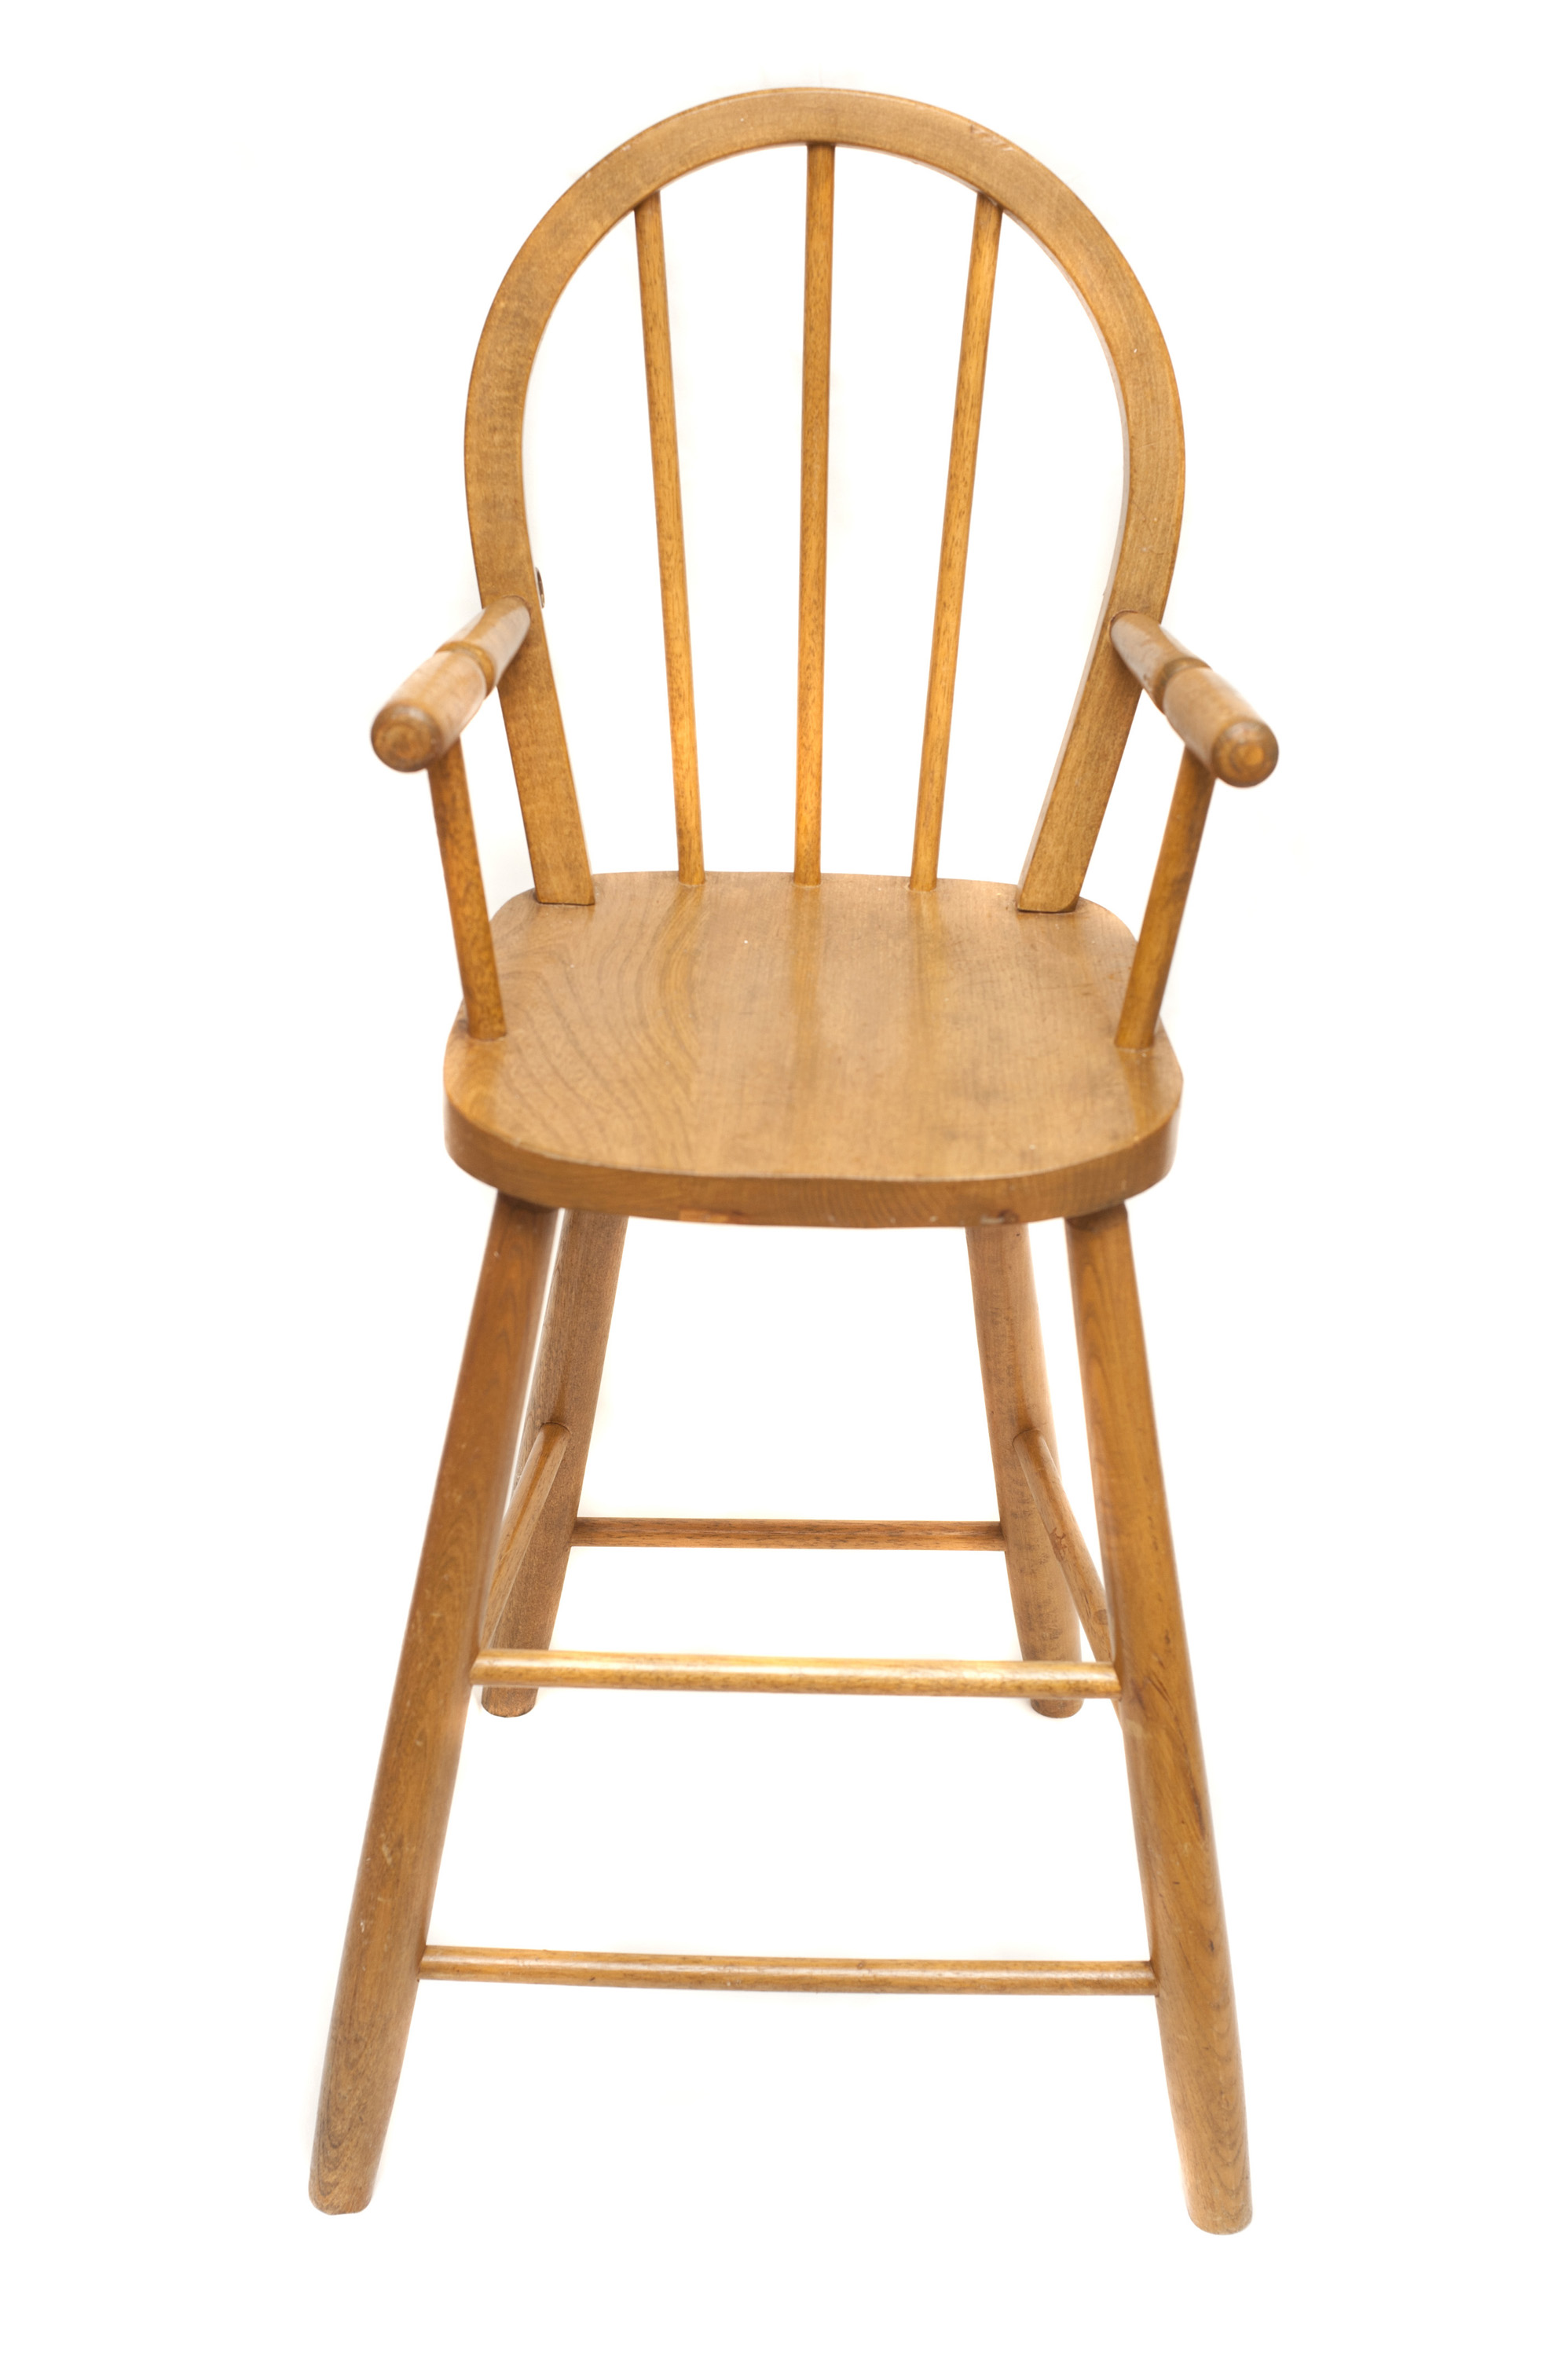 Toddler Wooden Chair Free Image Of Wooden High Chair